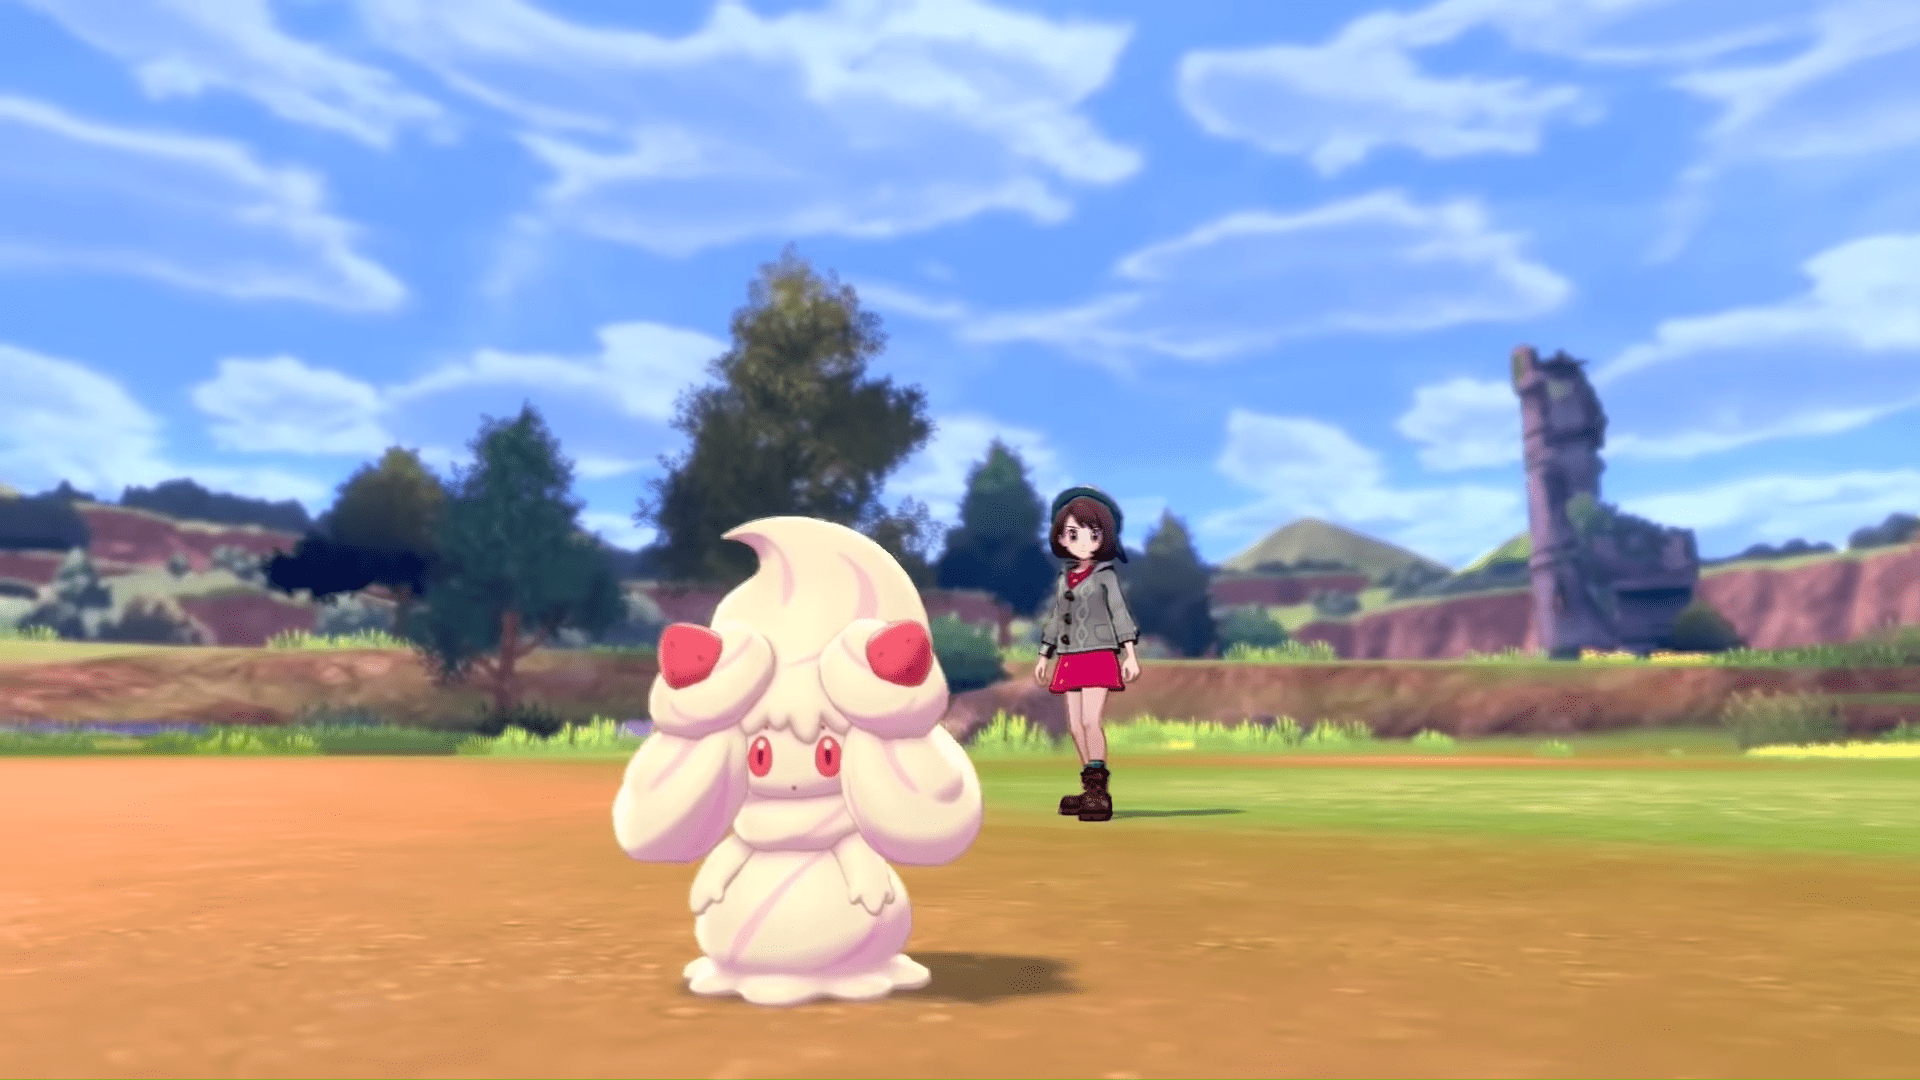 Nintendo Of America Shares New Pokemon From Sword And Shield On